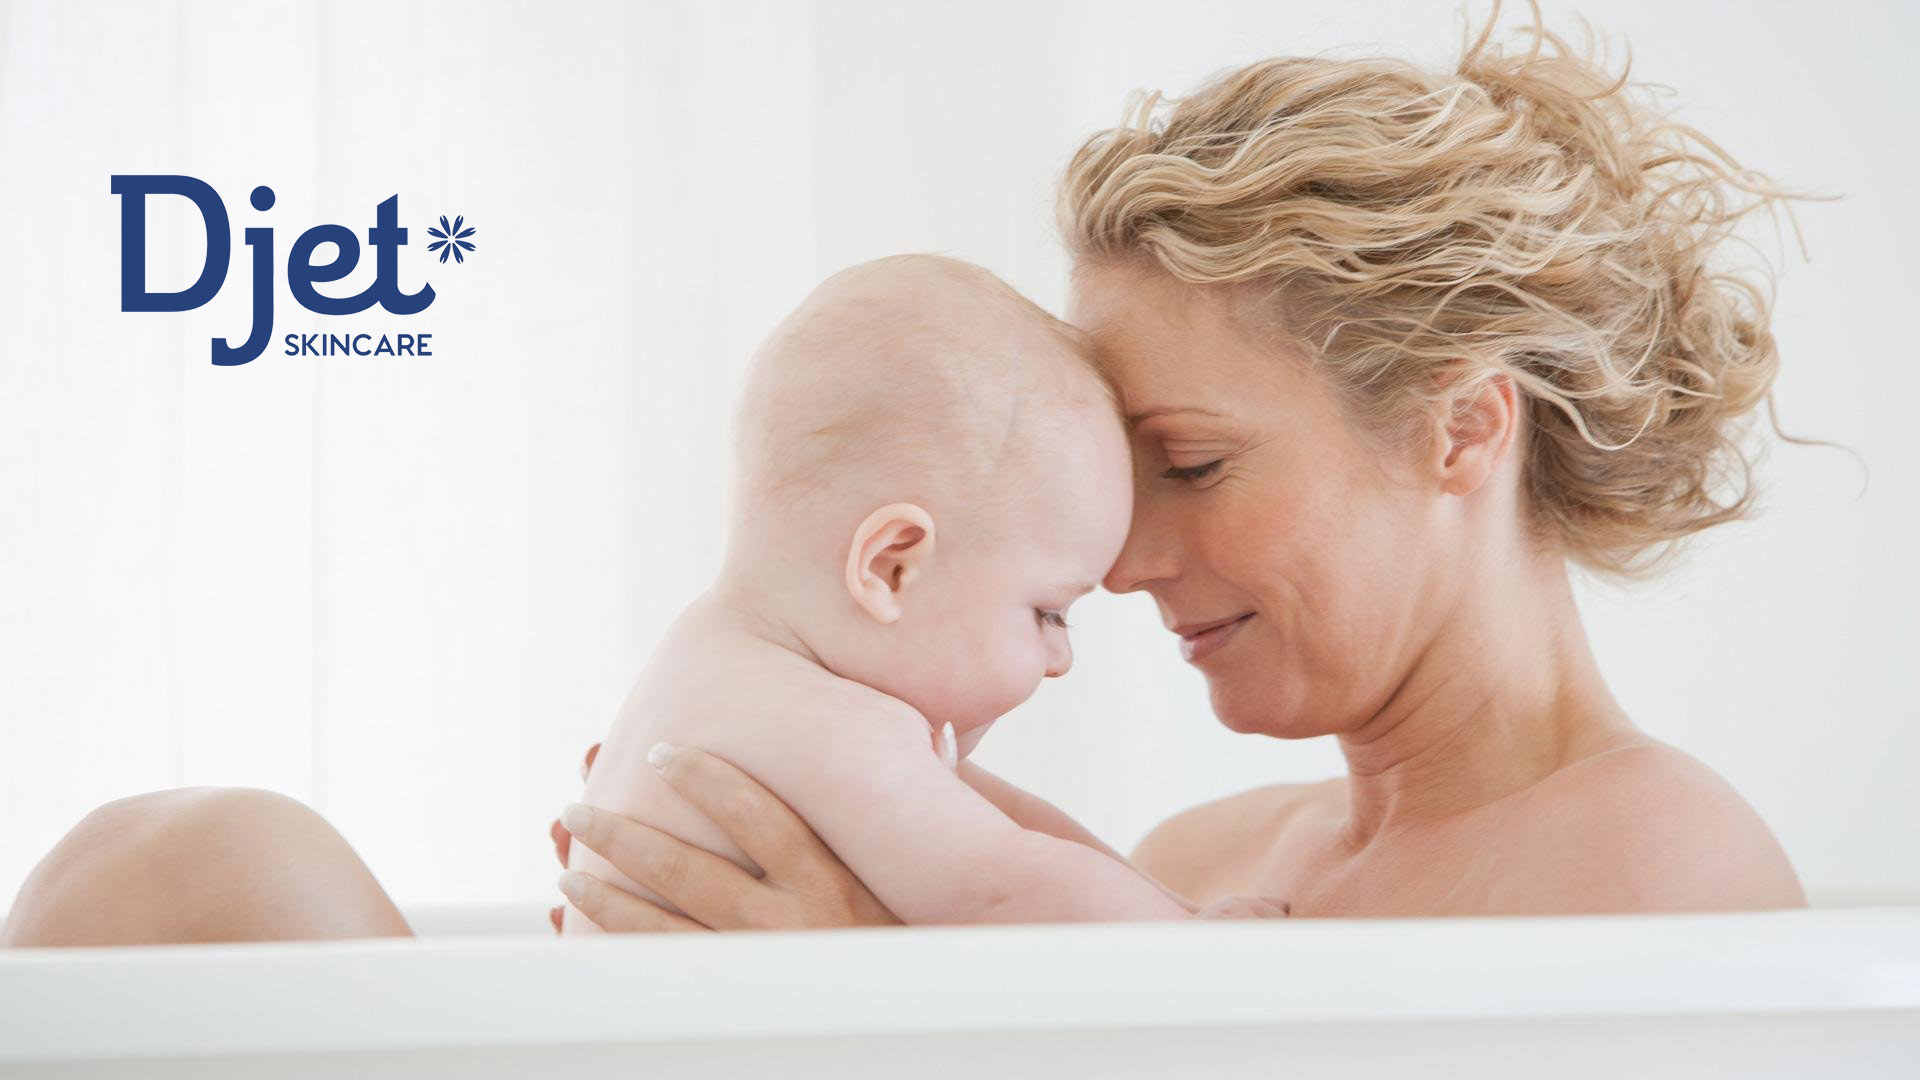 Djet - Y Not Natural Organic Baby Products